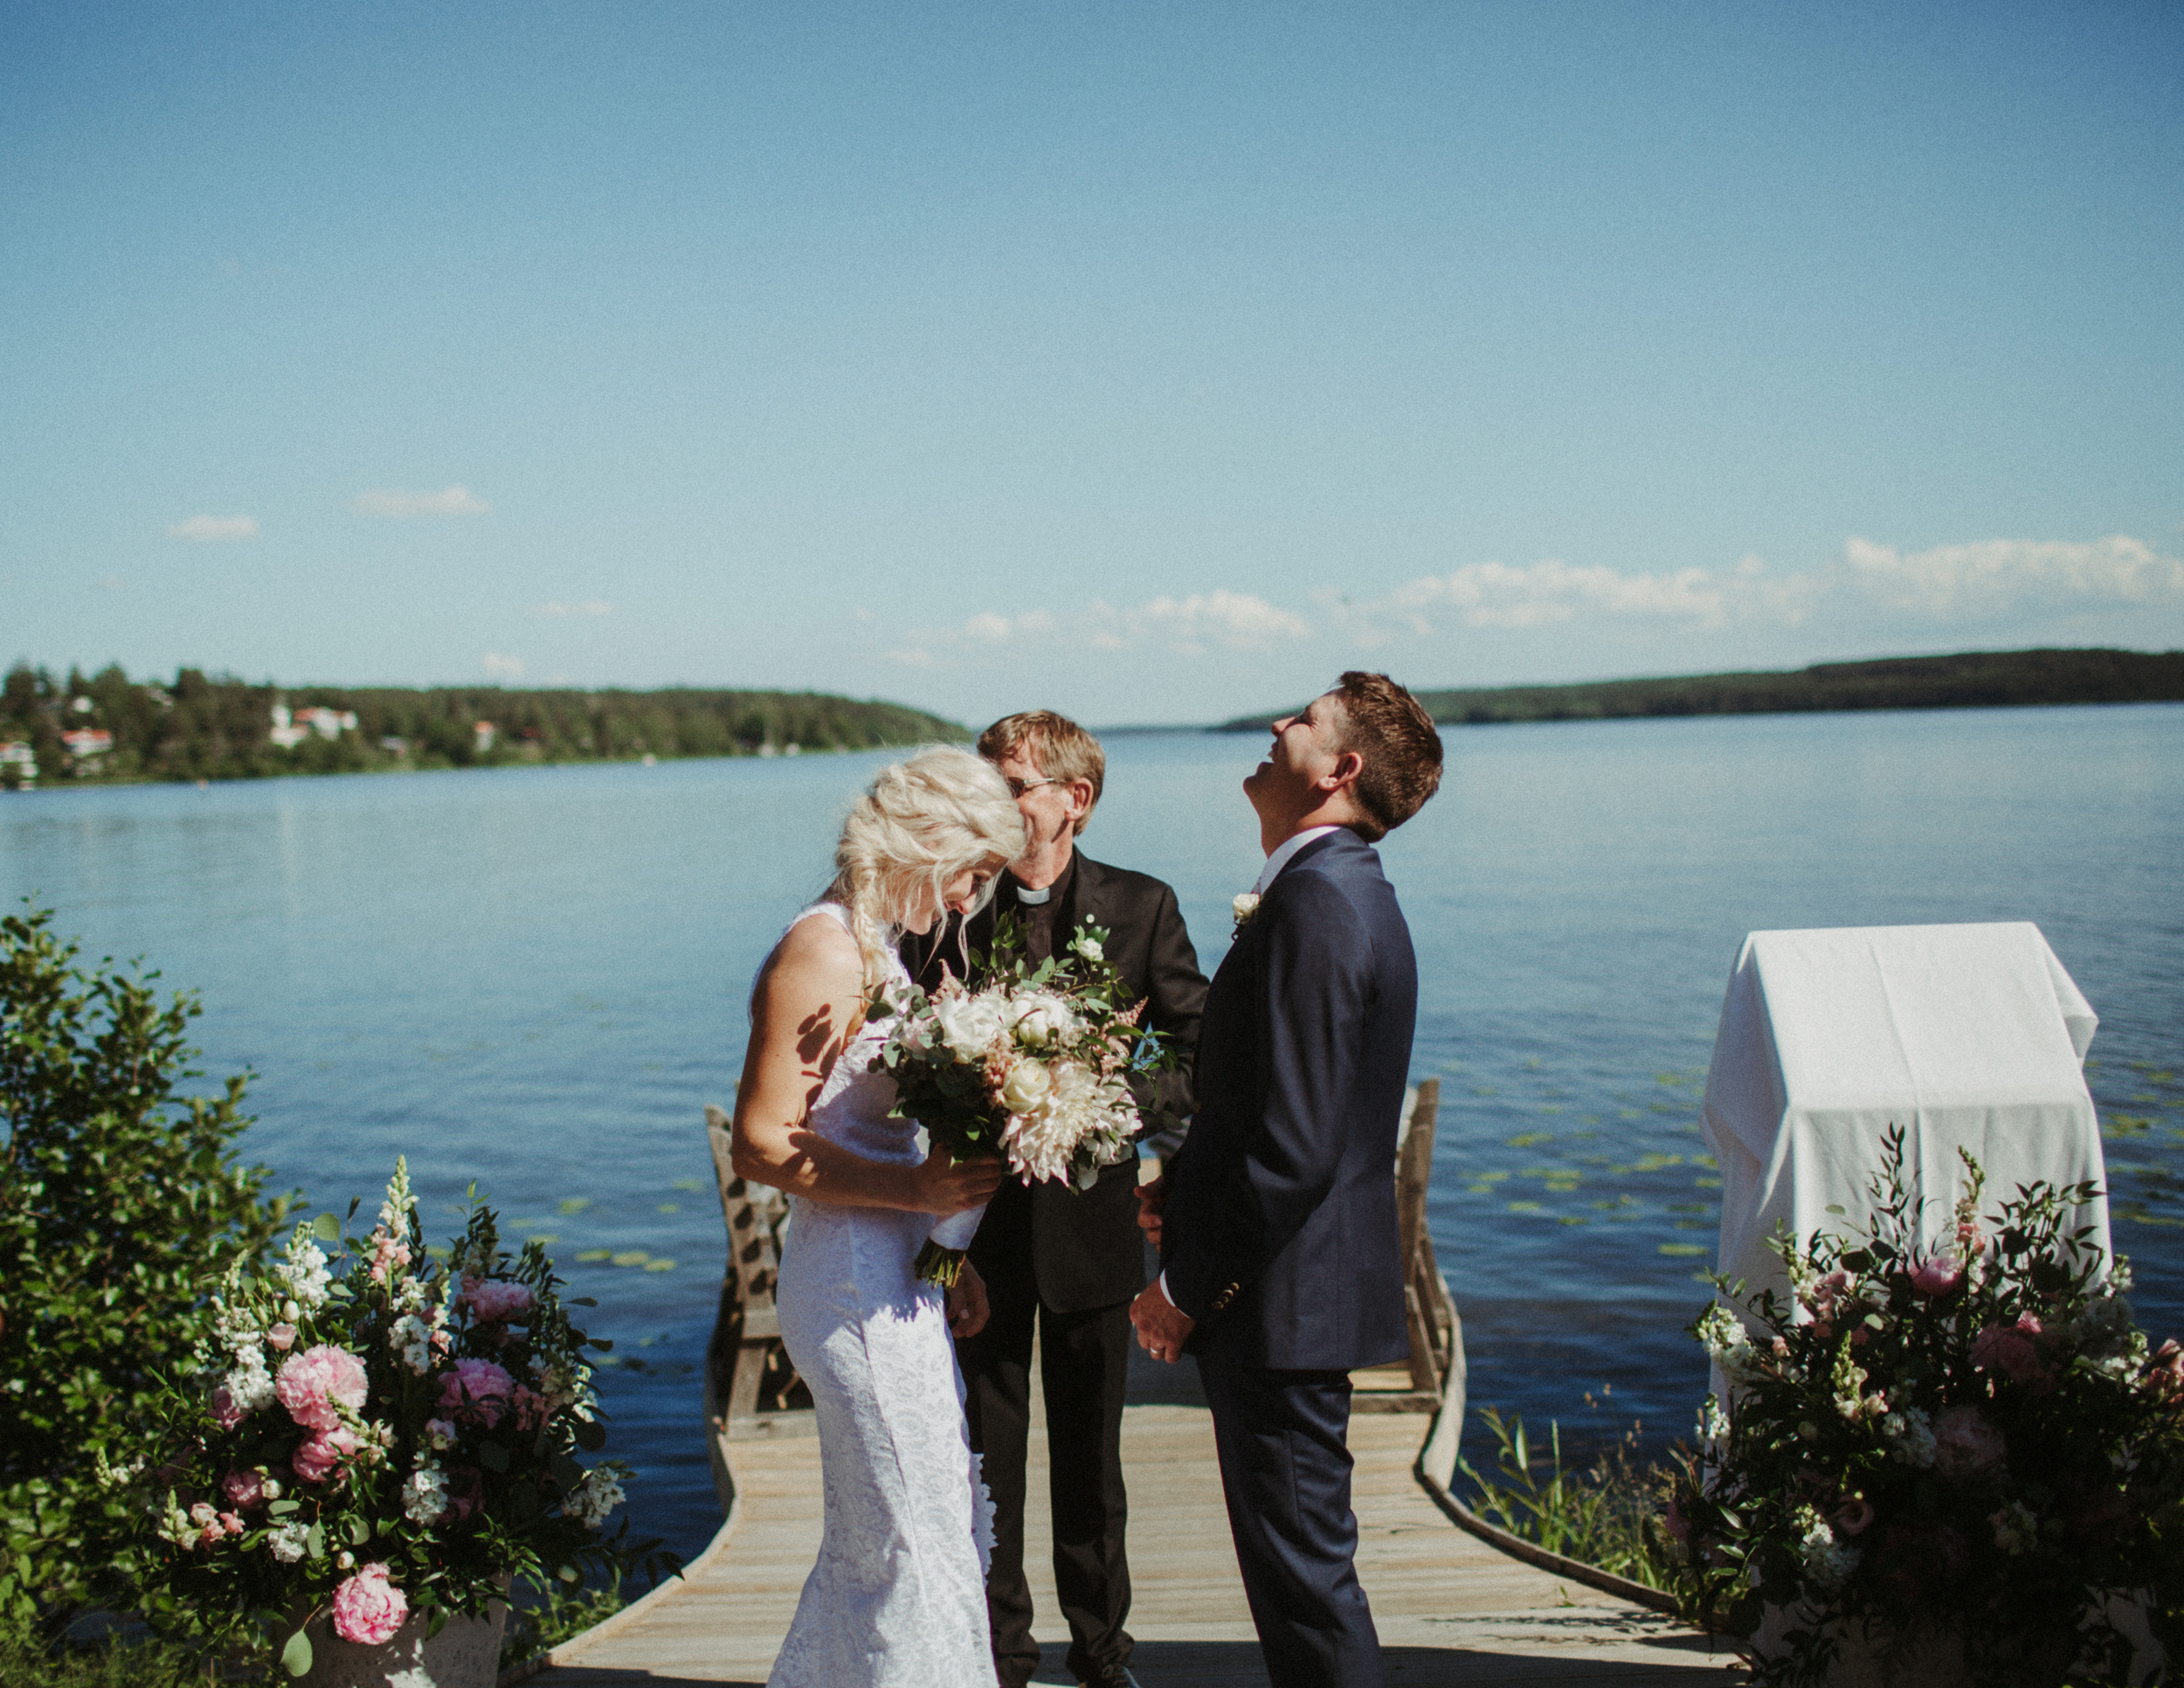 sigtuna-sweden-wedding_m_e-79.jpg